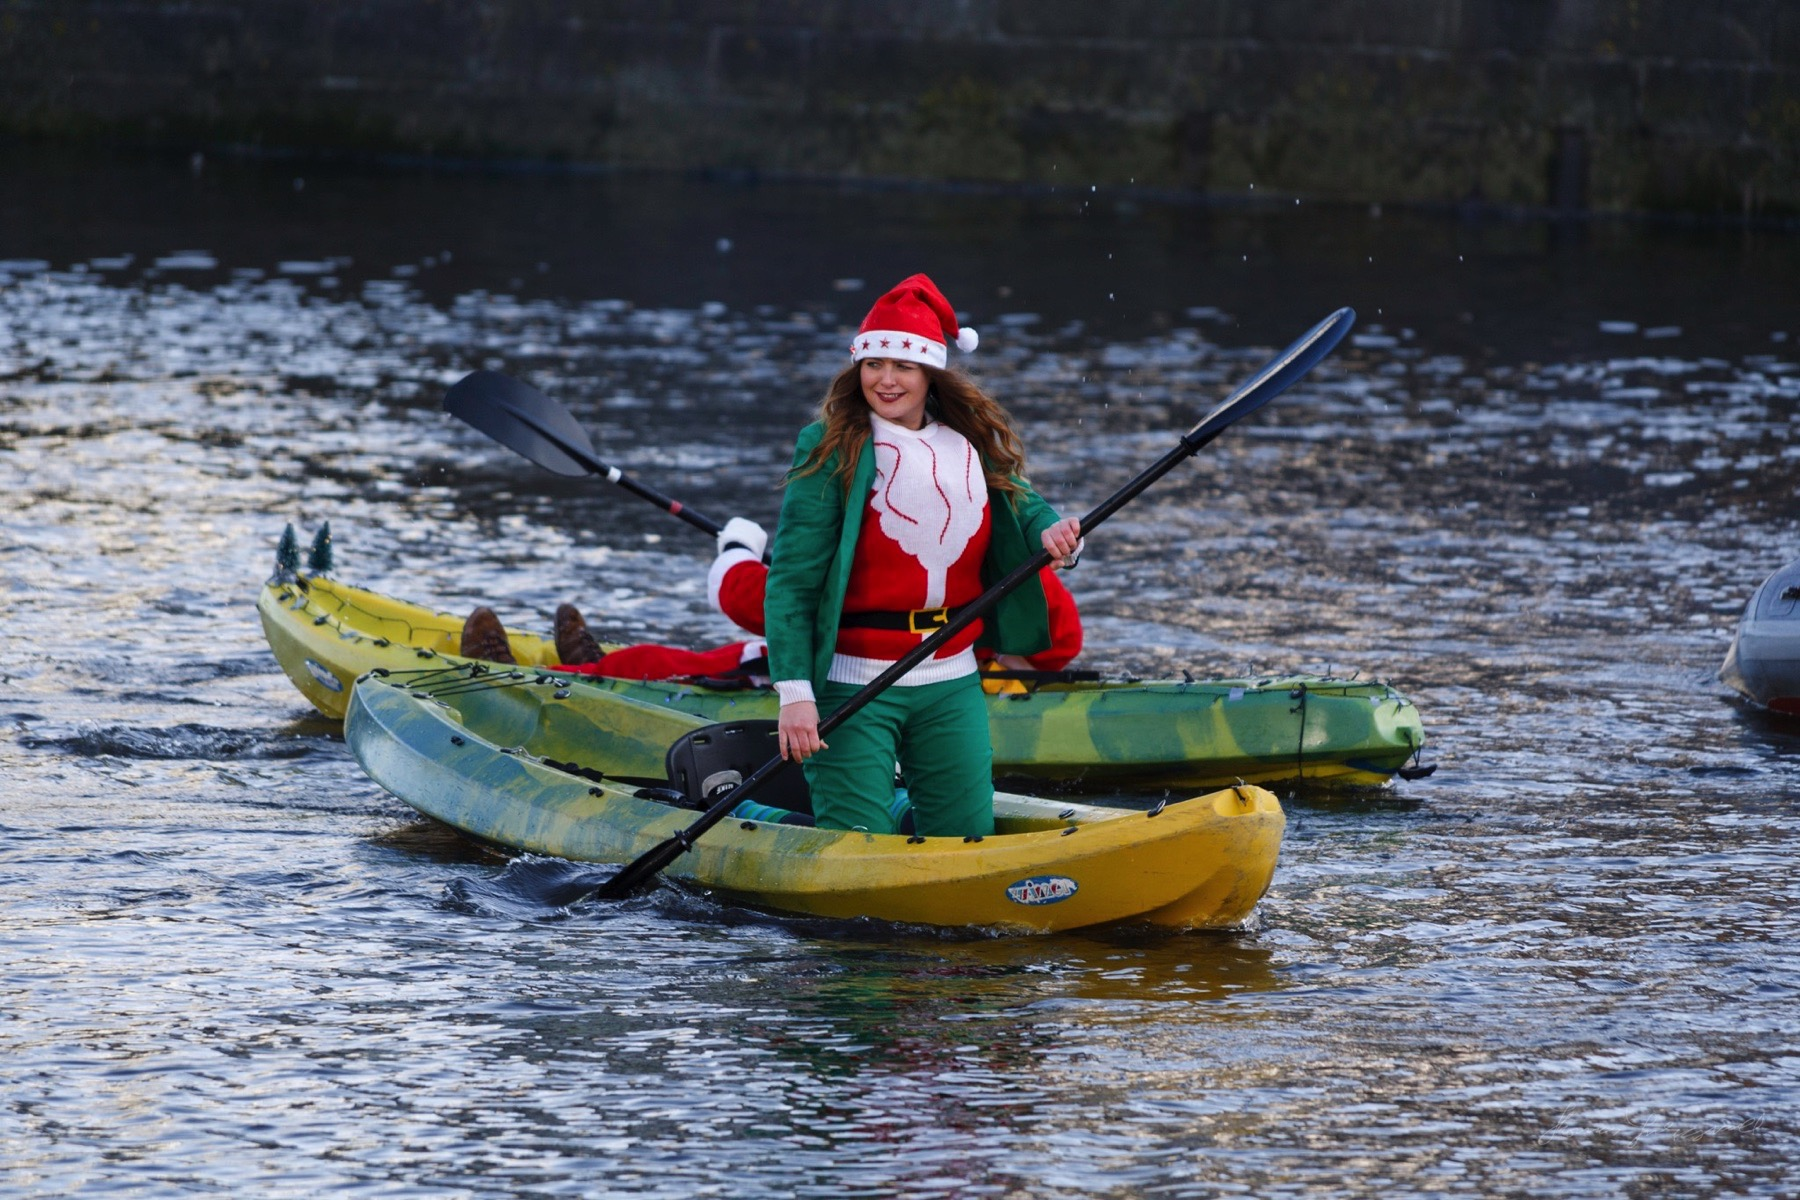 Woman dressed as a Christmas Elf on a kayak in the Liffey